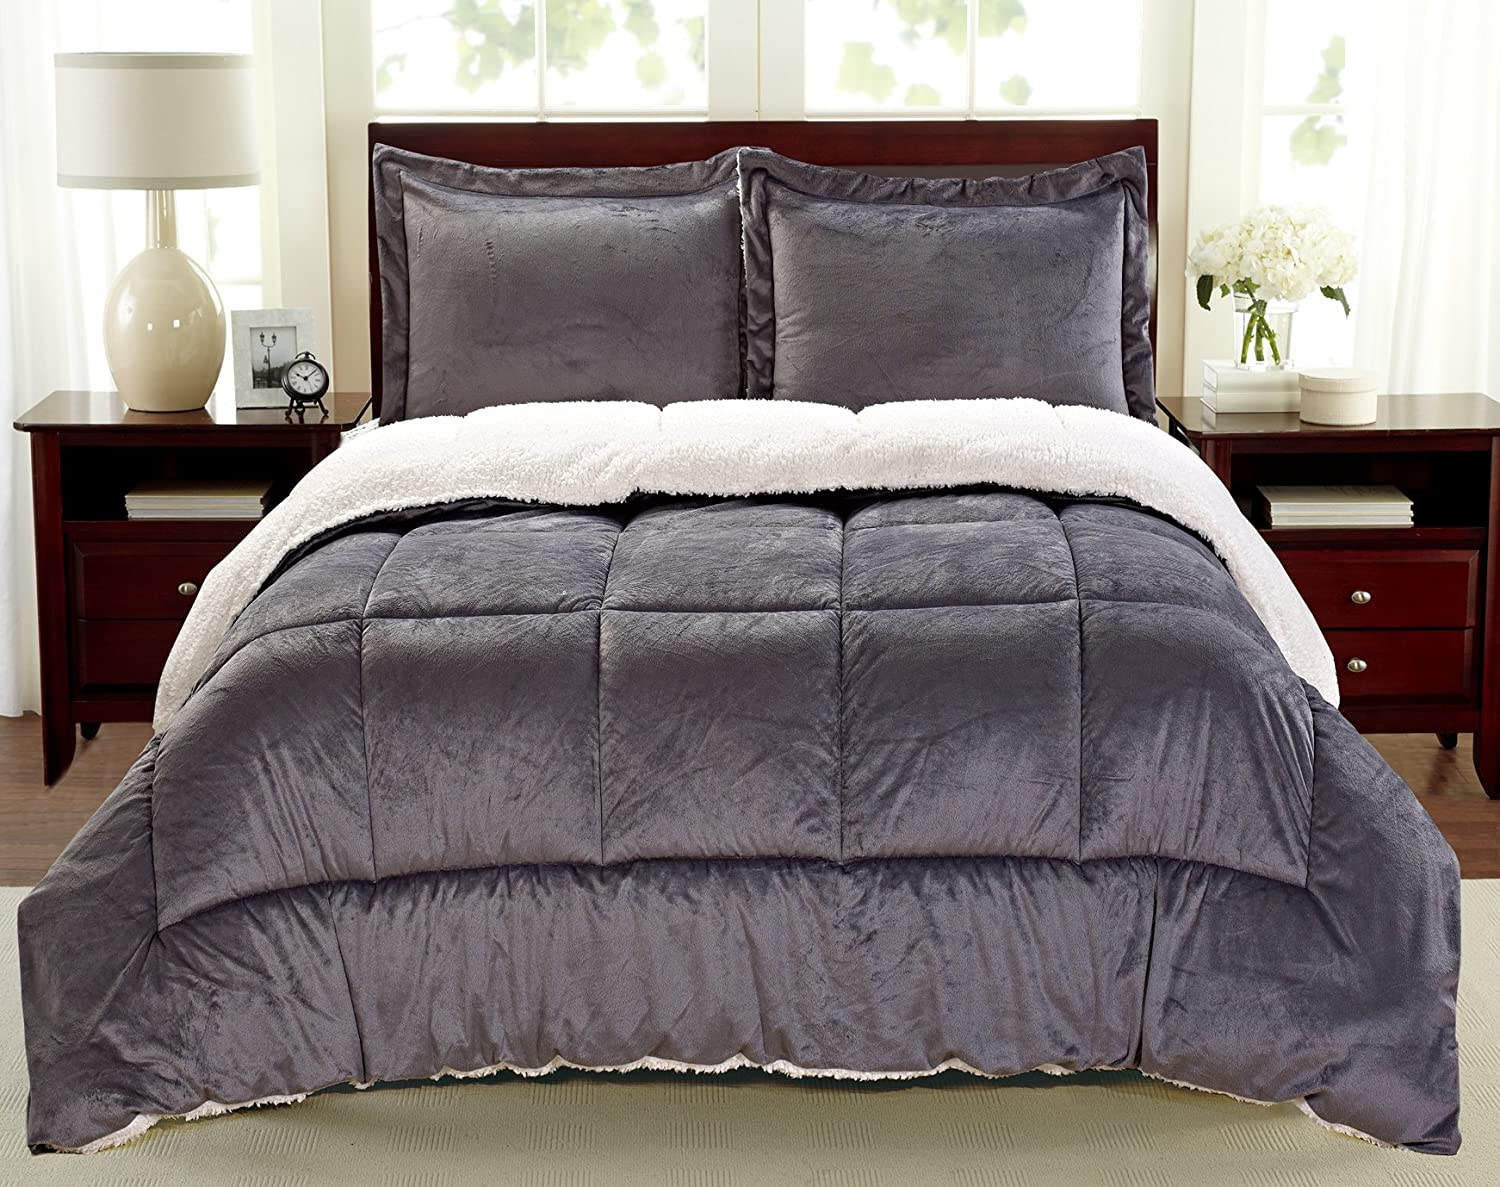 fur throw new comforter chair ideas fall sets buy inspirational best essentials fresh decor faux l grace of now to